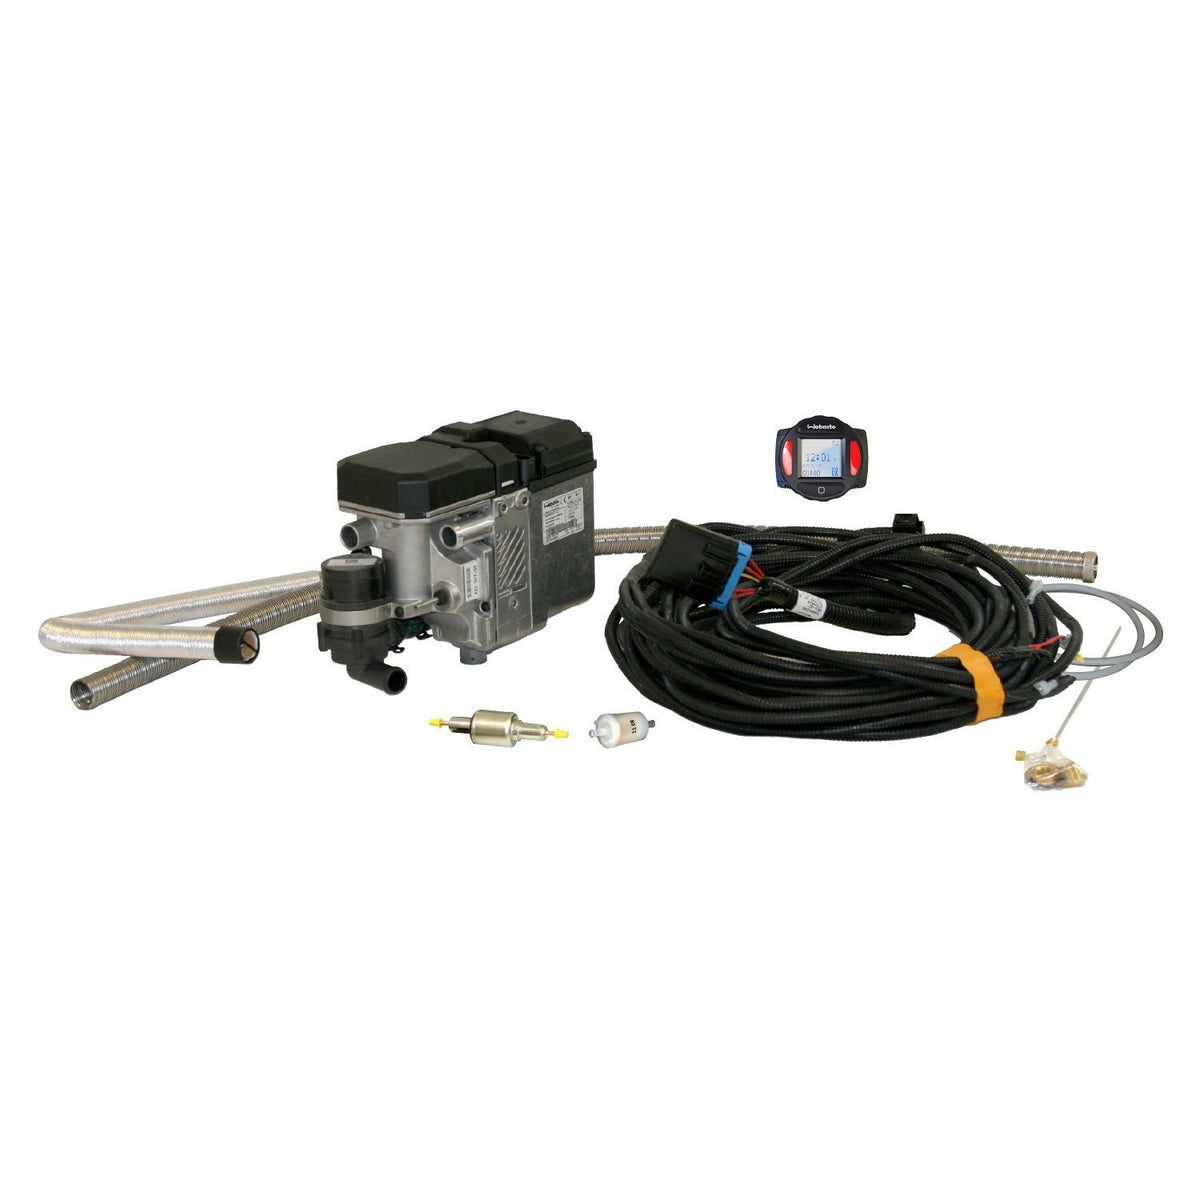 Webasto Thermo Top C Heater Diesel Kit With Smartemp Control Fx 20 Wiring Diagram